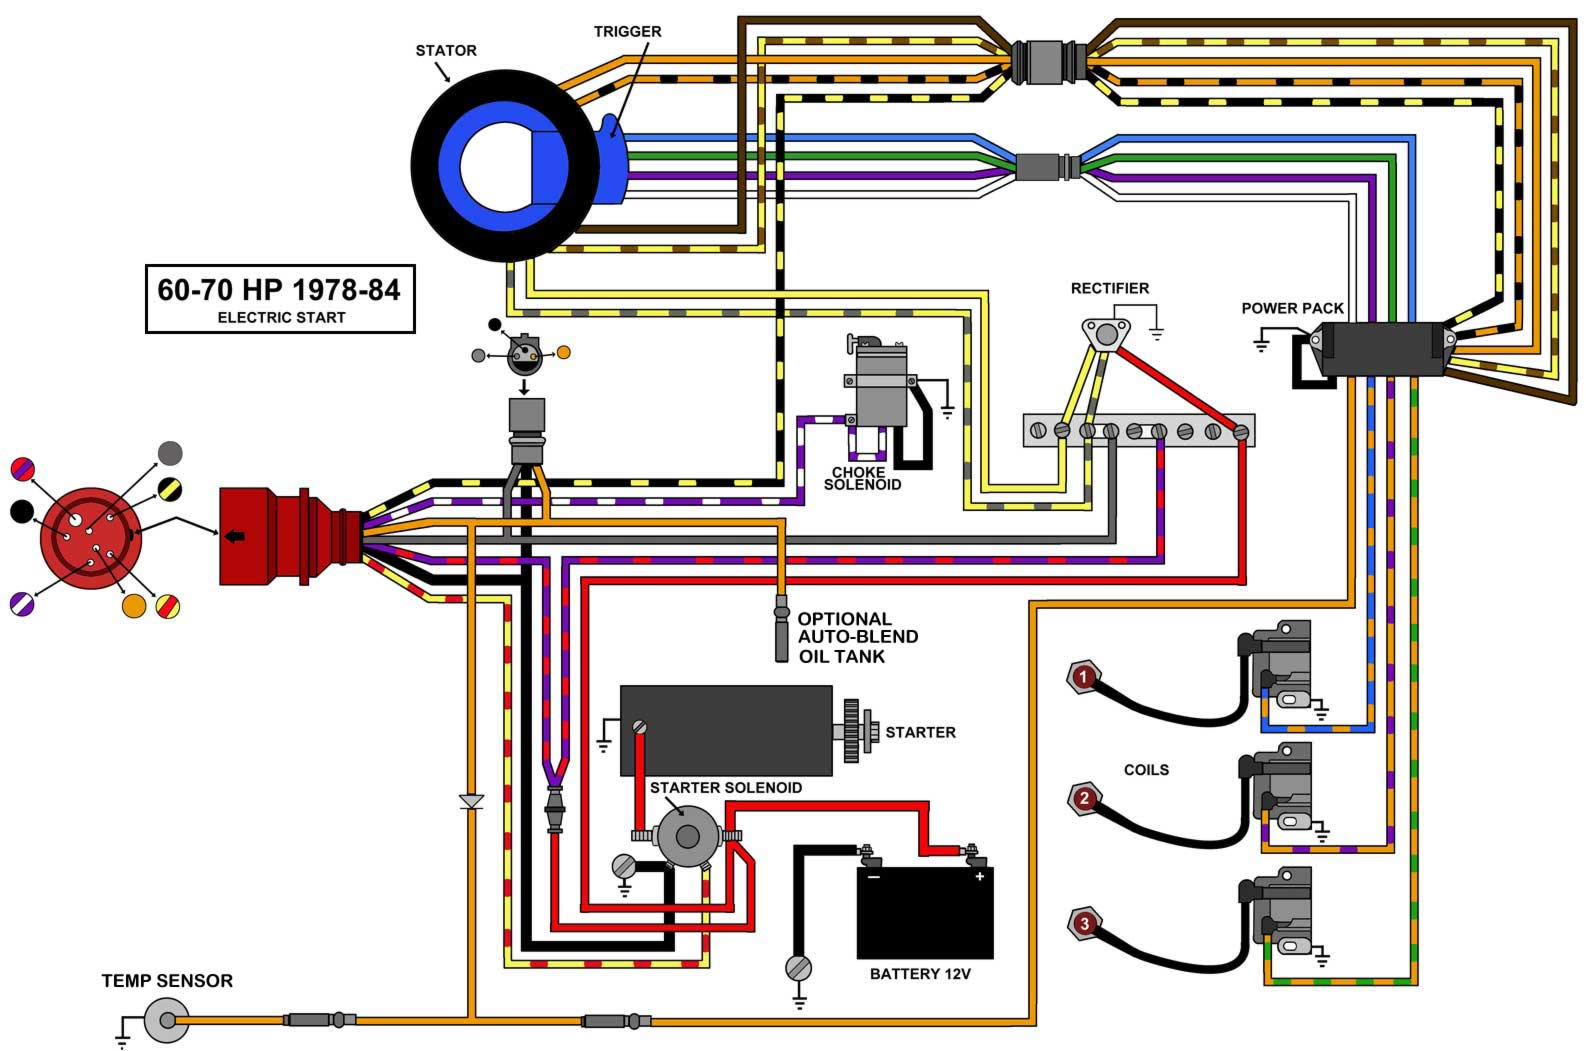 78 84_3 CYL_EL omc control box wiring diagram omc control box parts \u2022 wiring honda outboard wiring harness at pacquiaovsvargaslive.co